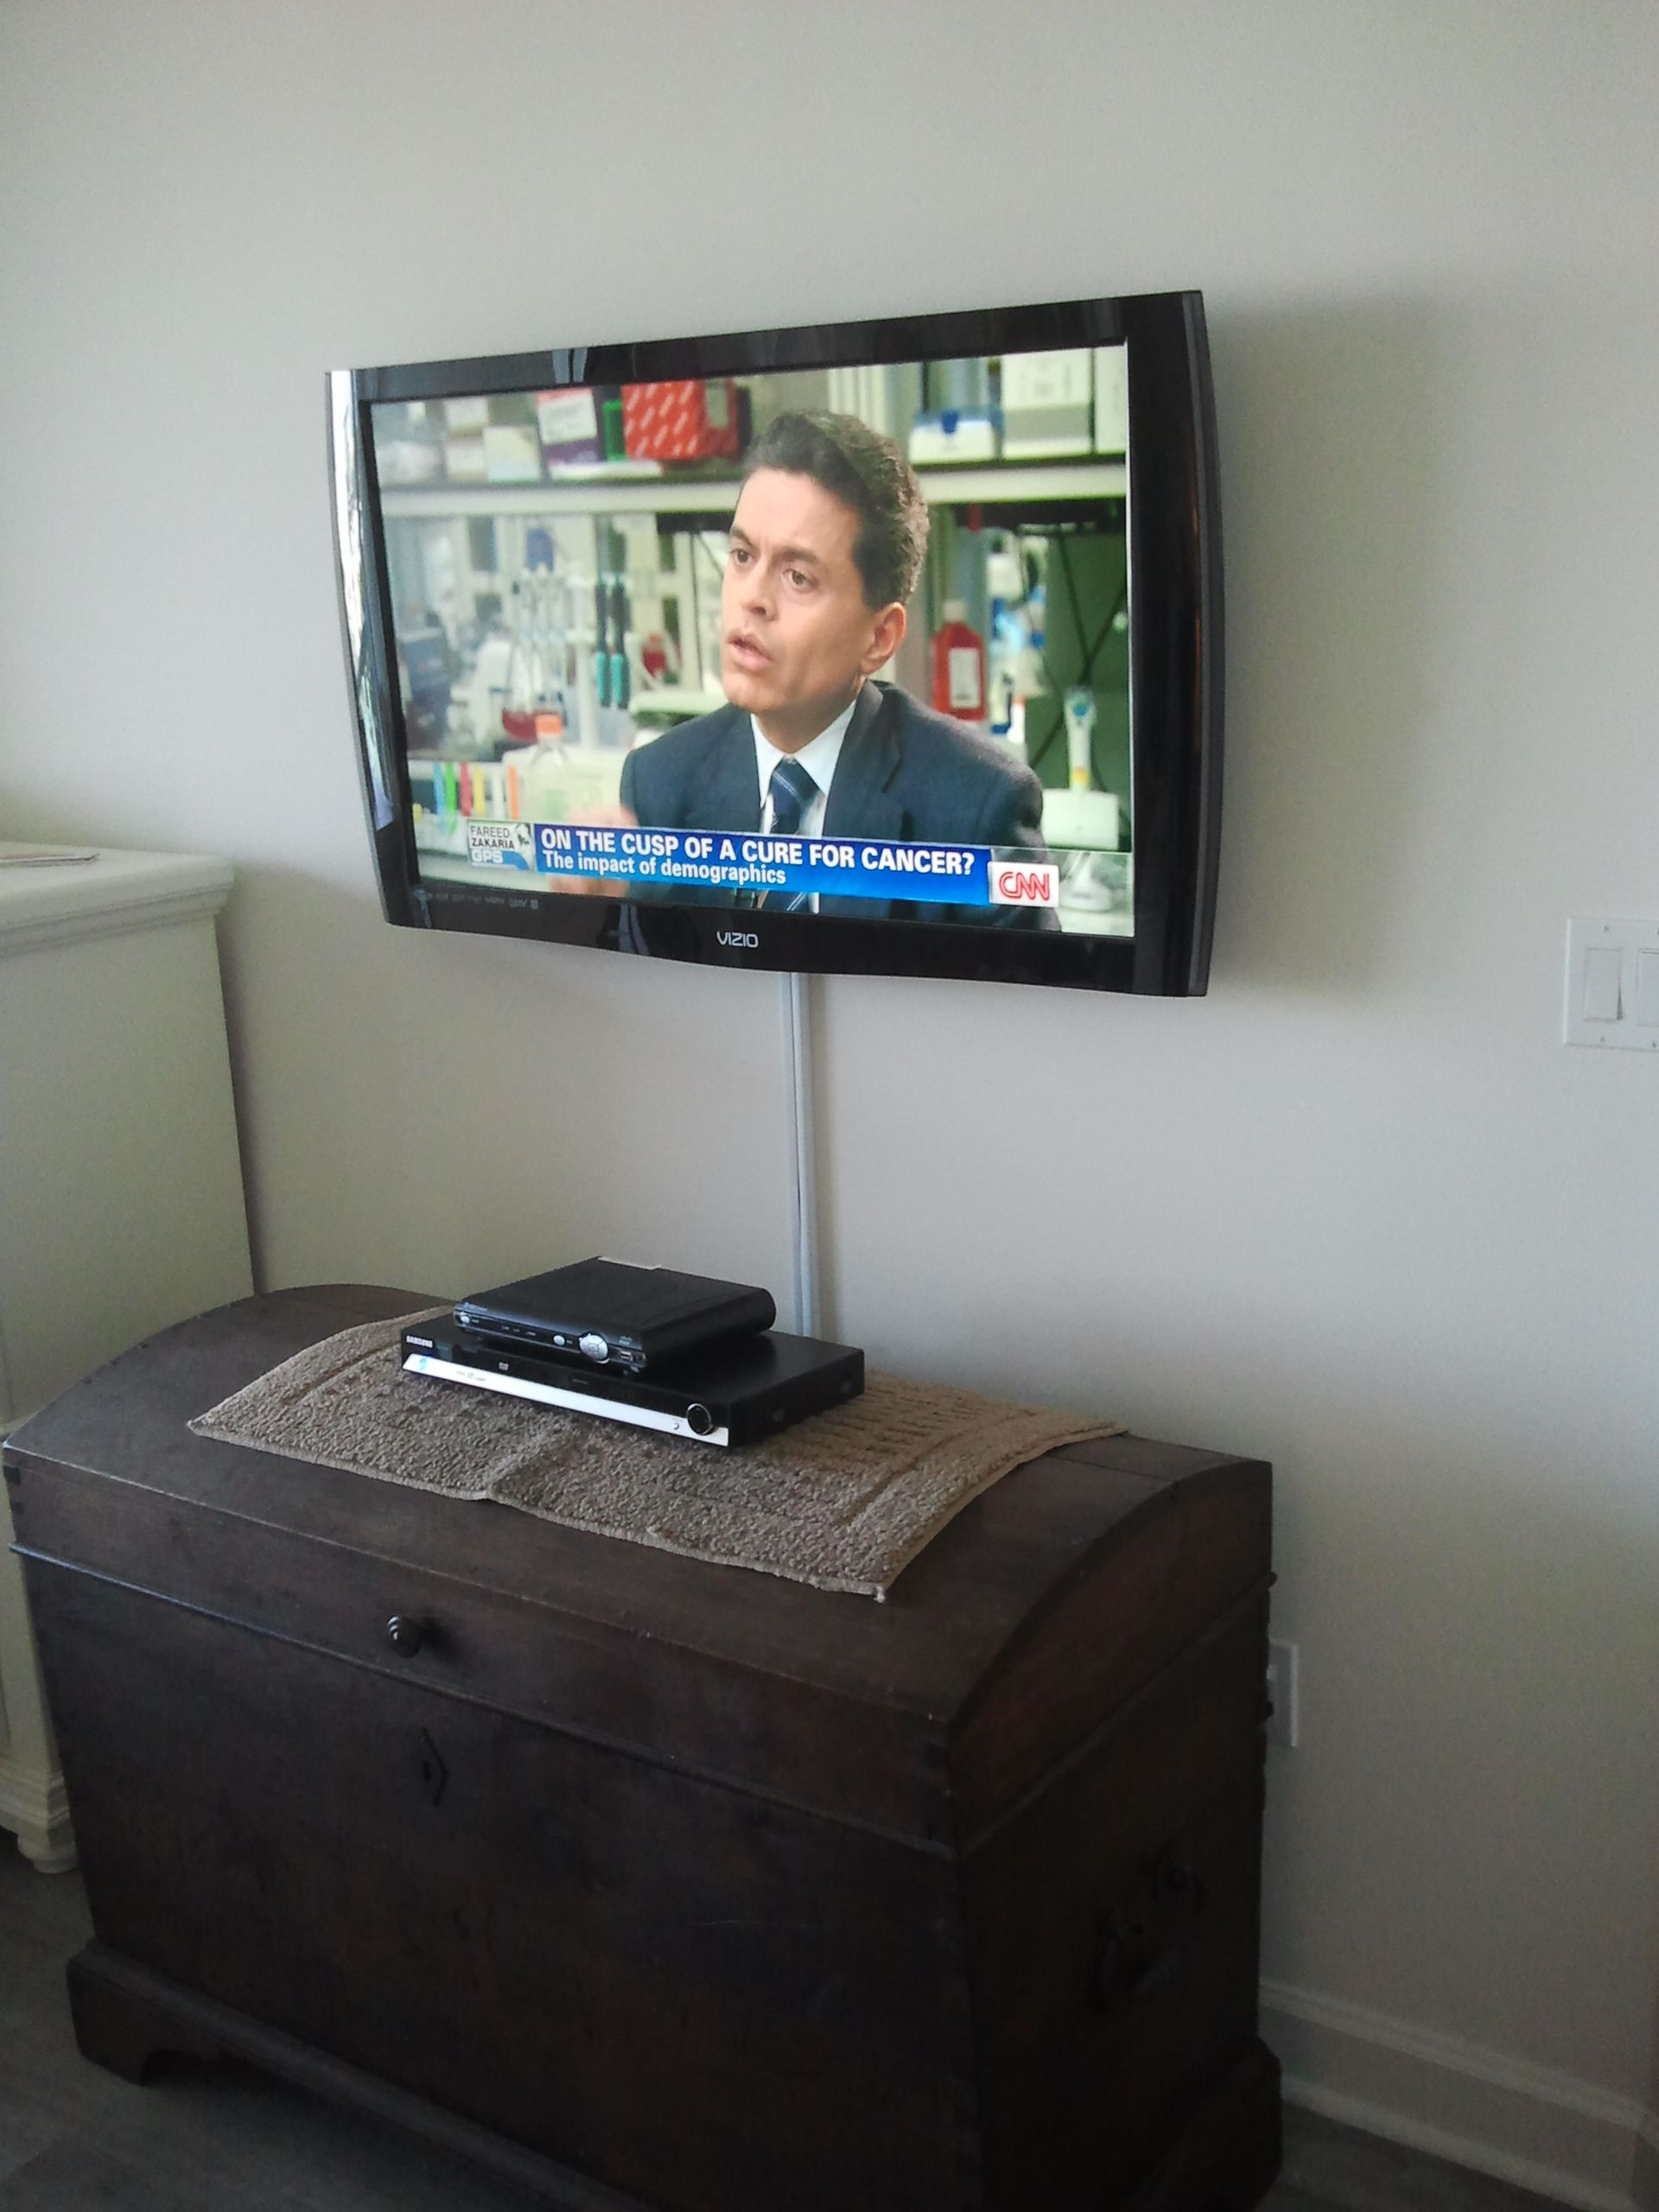 TV mounting with the wires concealed in wire molding | Home ...